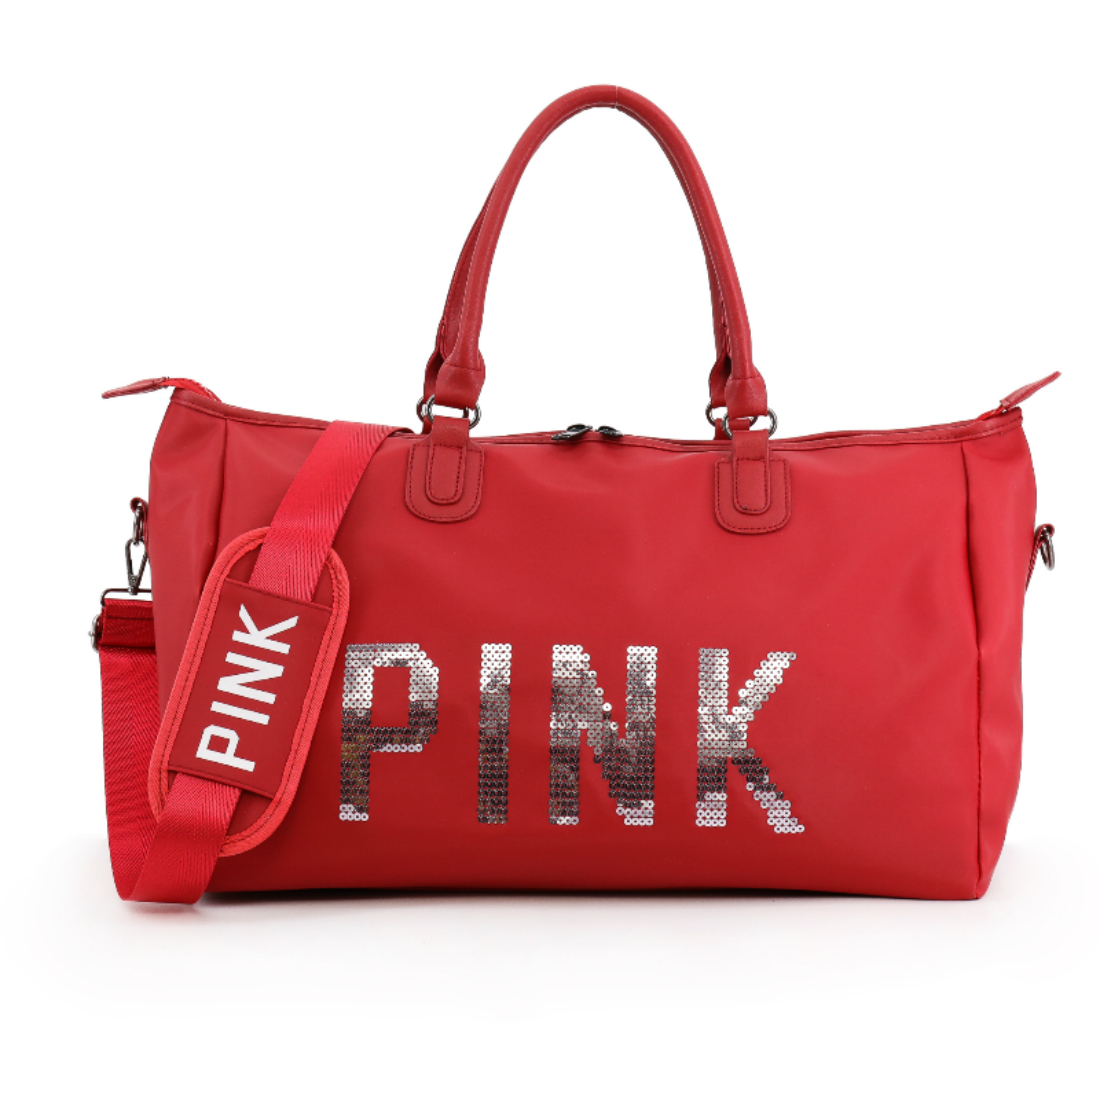 2018 New Large Capacity Tote sports Bag Red Duffle Bag Victoria gym Bag Secret Weekend Vs Pink Print Handbags for Women